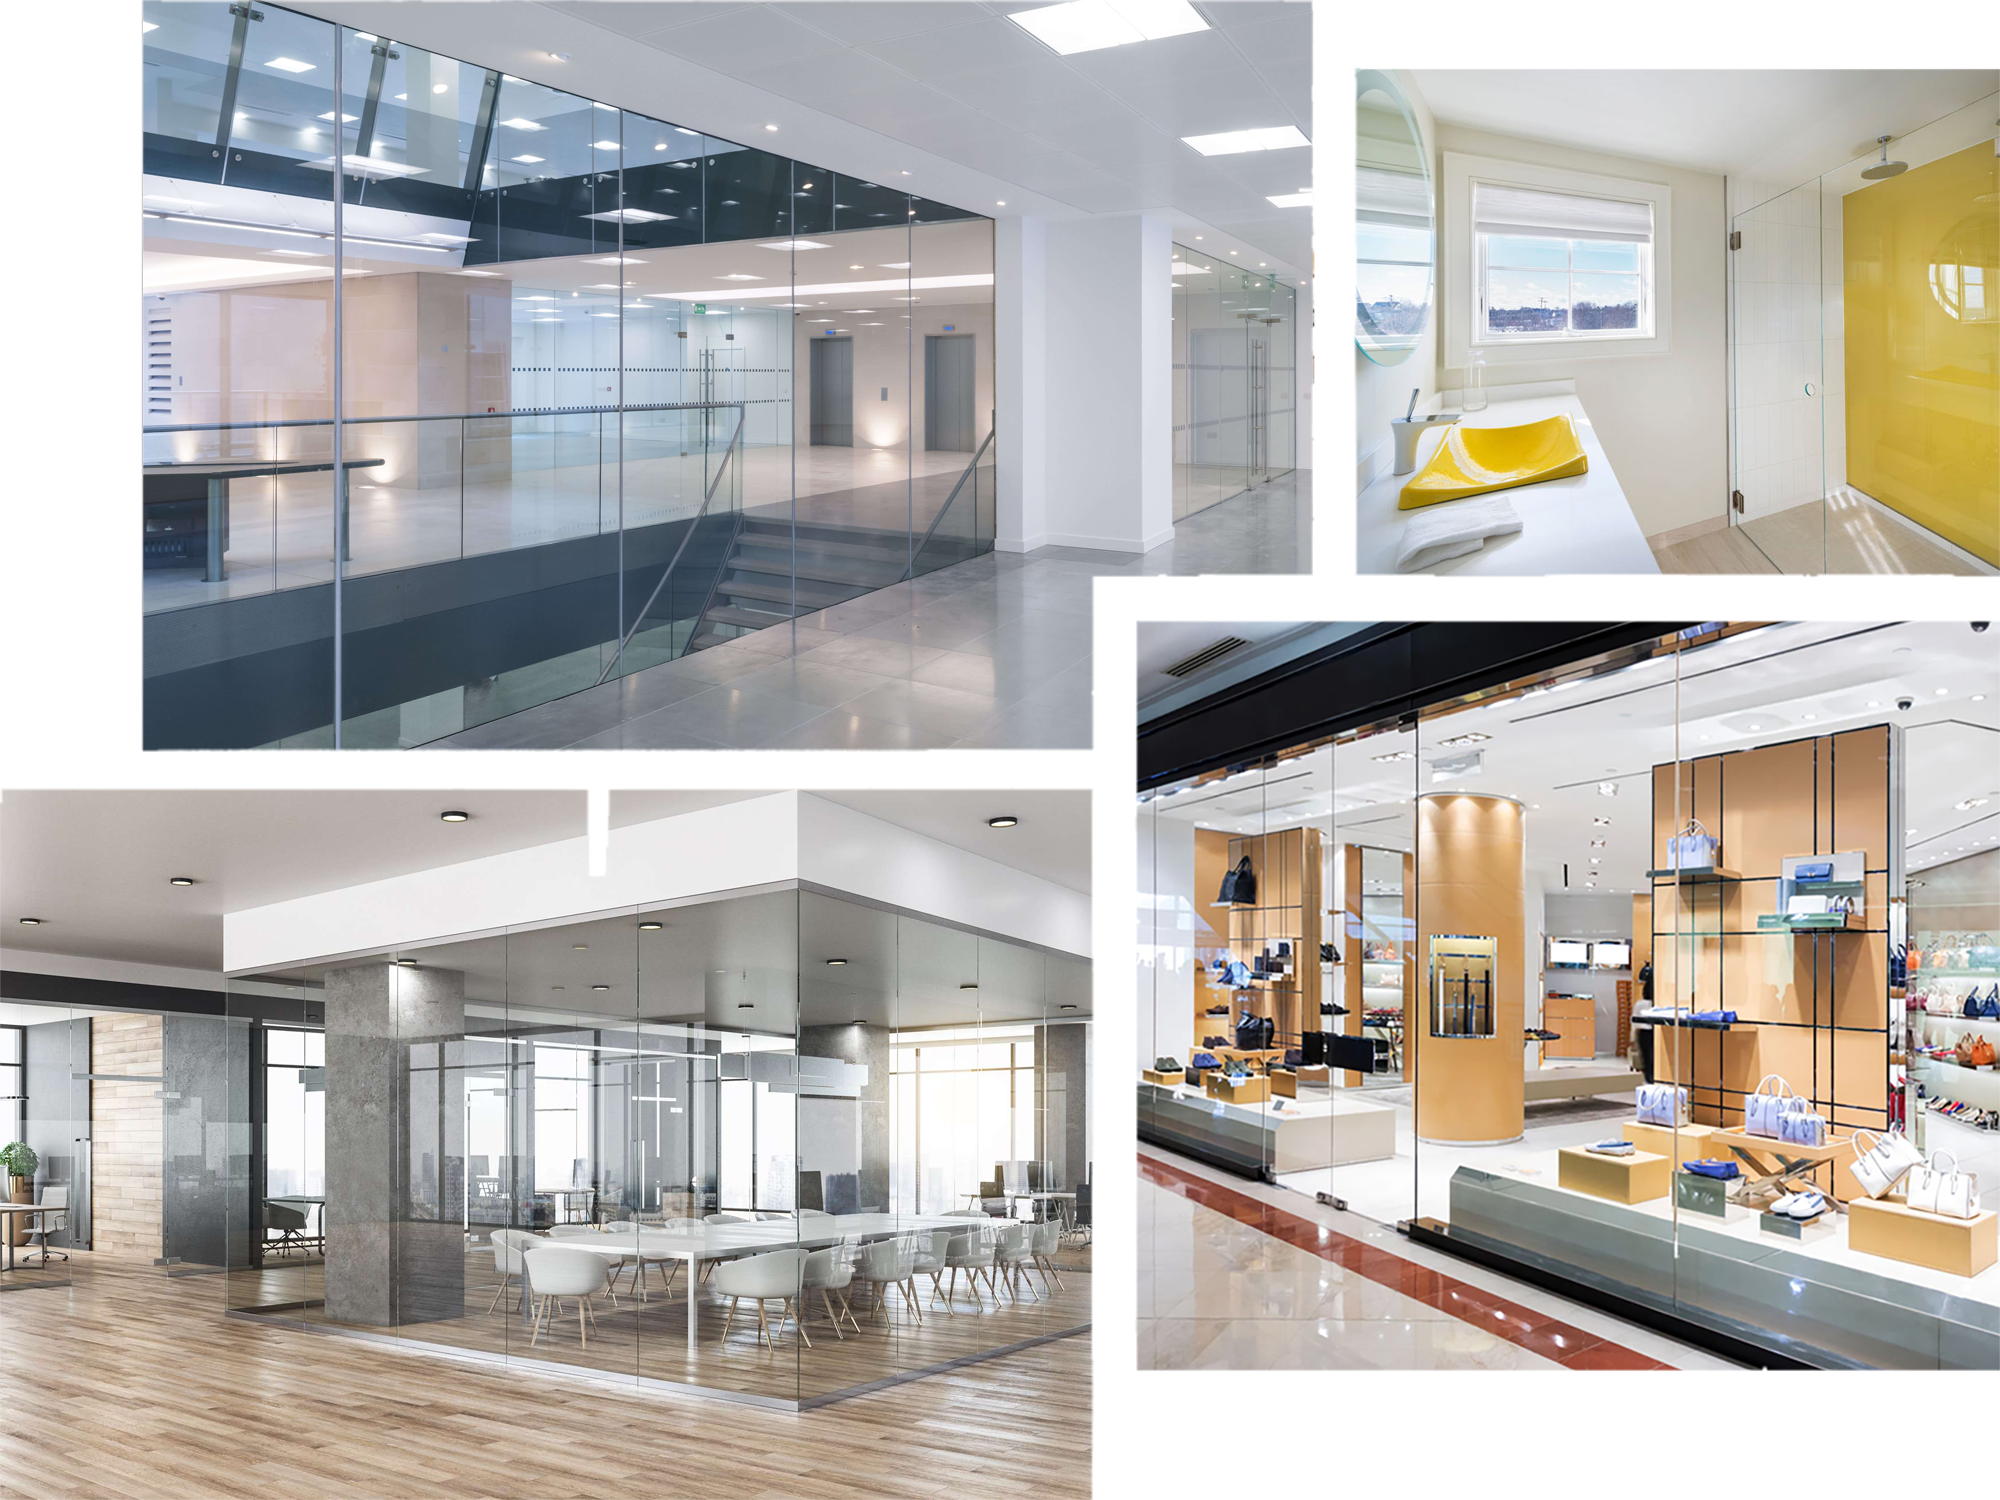 Collage-of-glass-images---glass-office-walls,-glass-shower-walls,-and-retail-displays